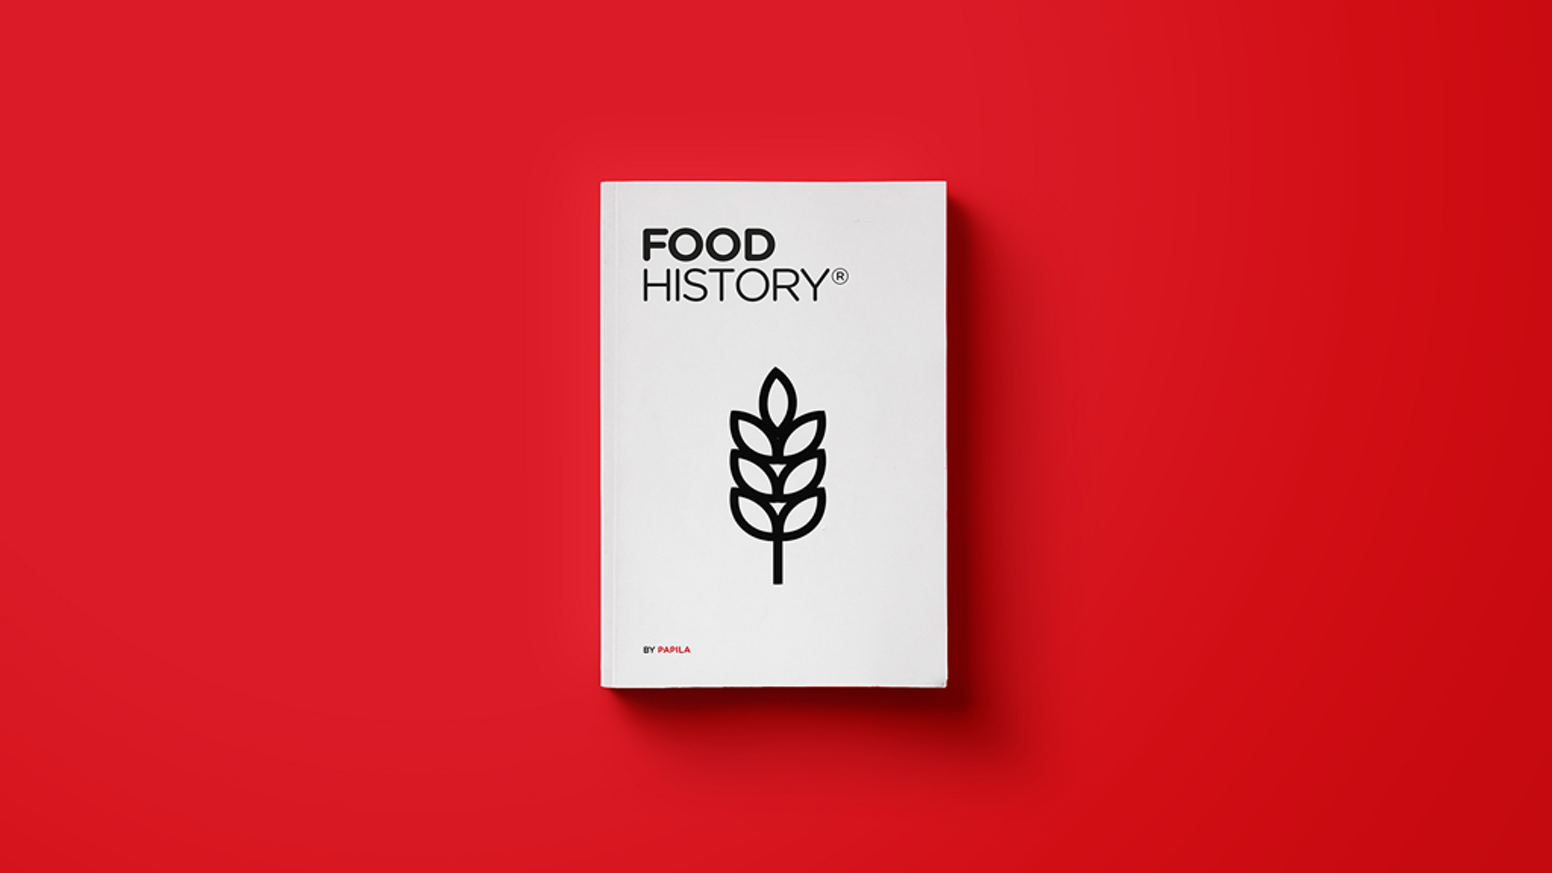 Food History is a project which explains how the relationship between food and human beings has evolved throughout history.